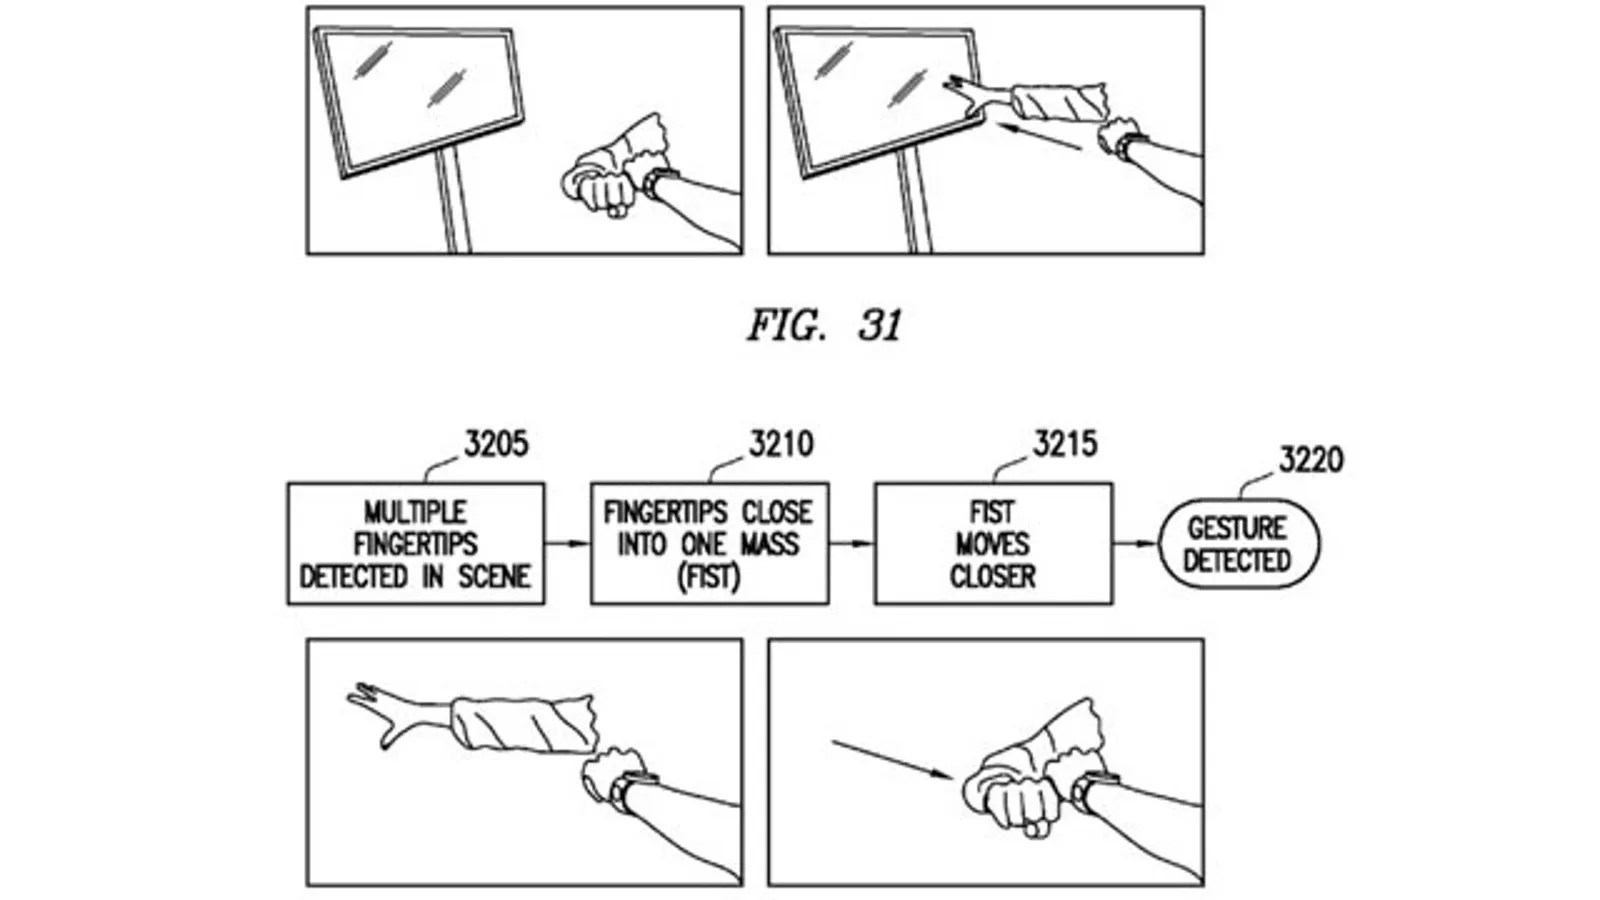 Samsung Smartwatch Patent Predicts Gesture Control on Your